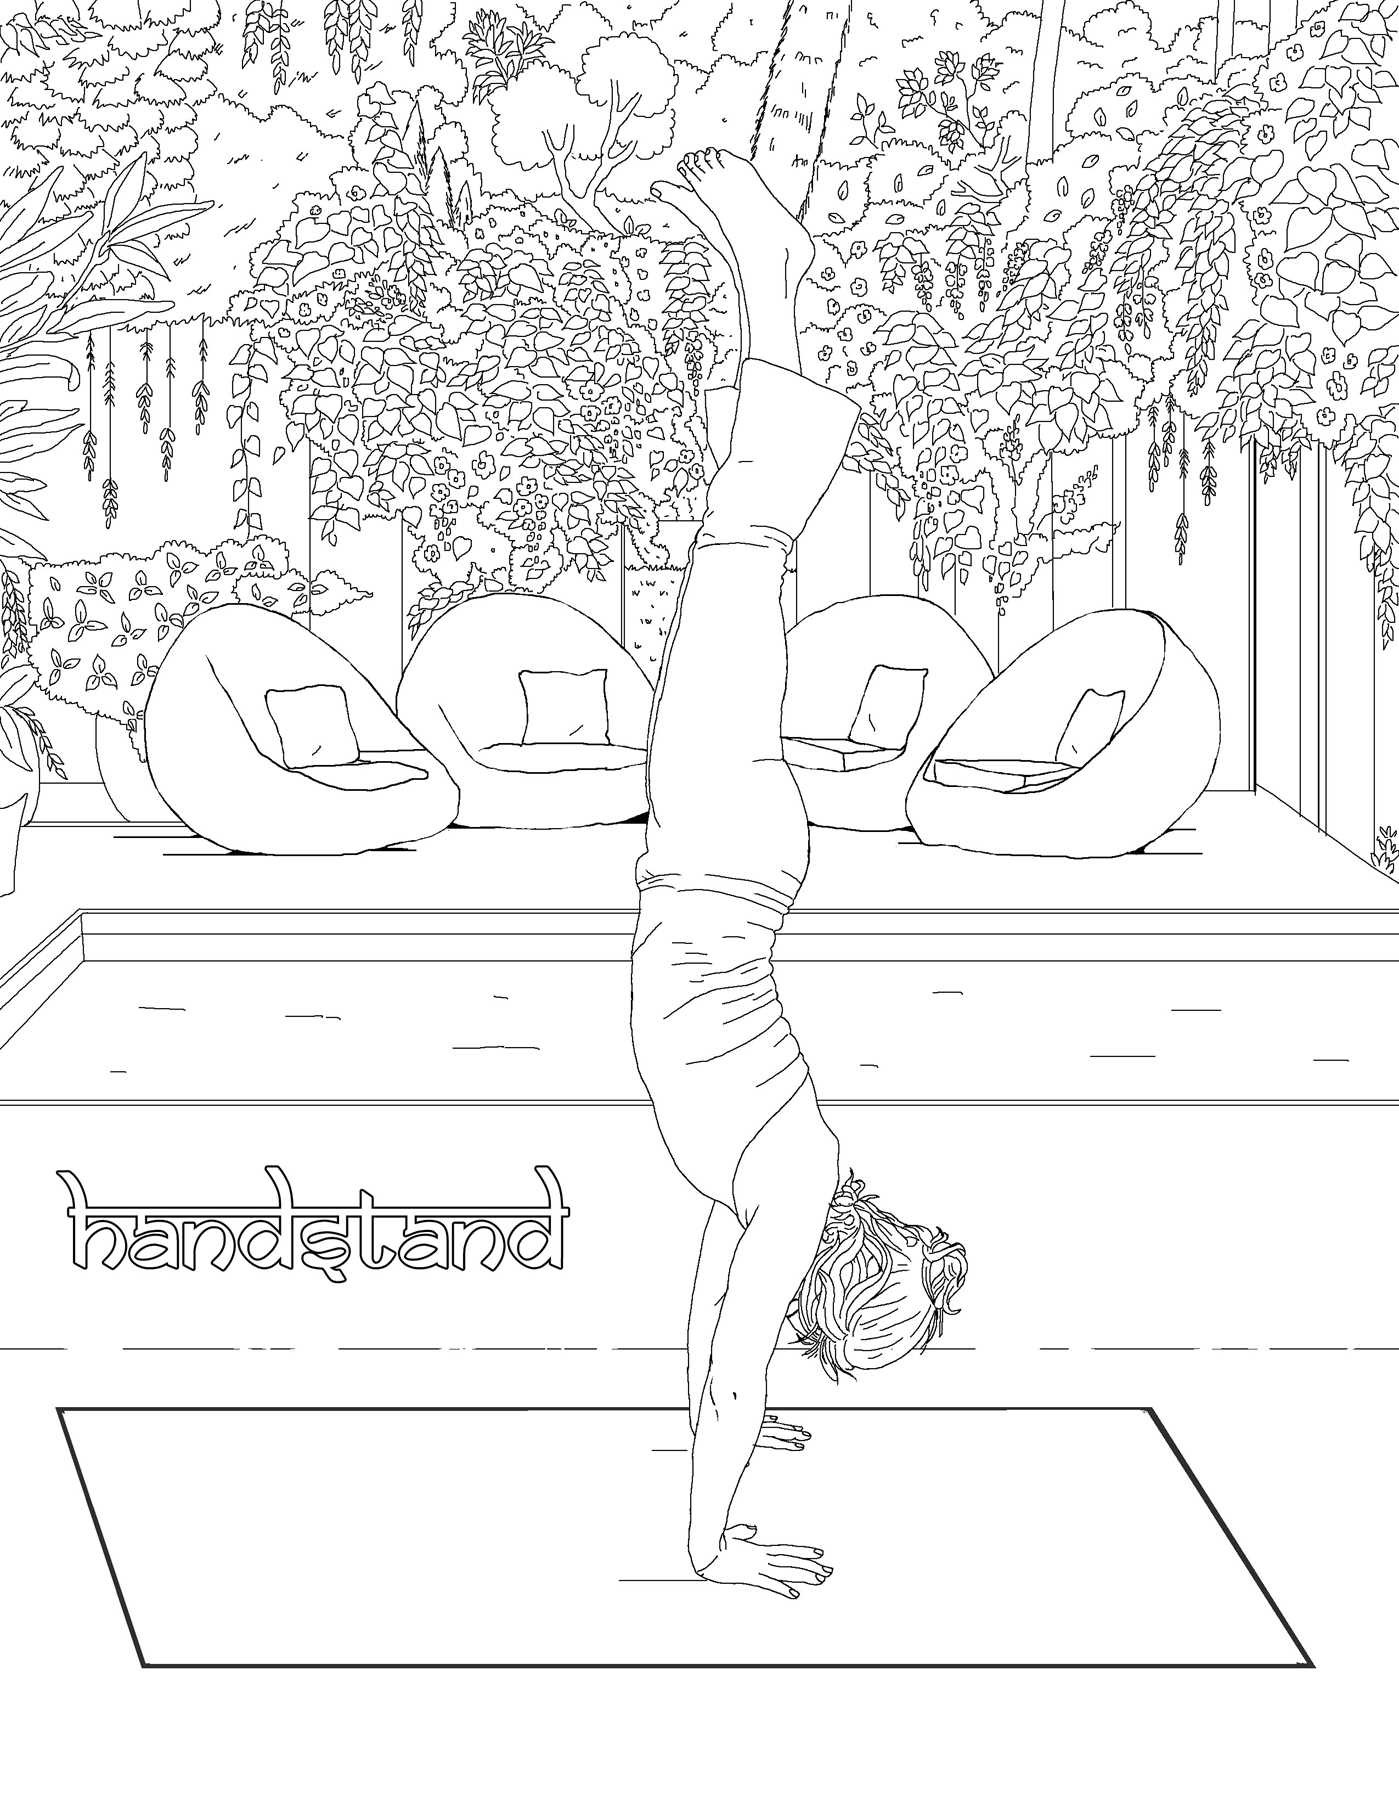 Publishers for adult coloring books -  The Yoga Poses Adult Coloring Book 9781682611302 In01